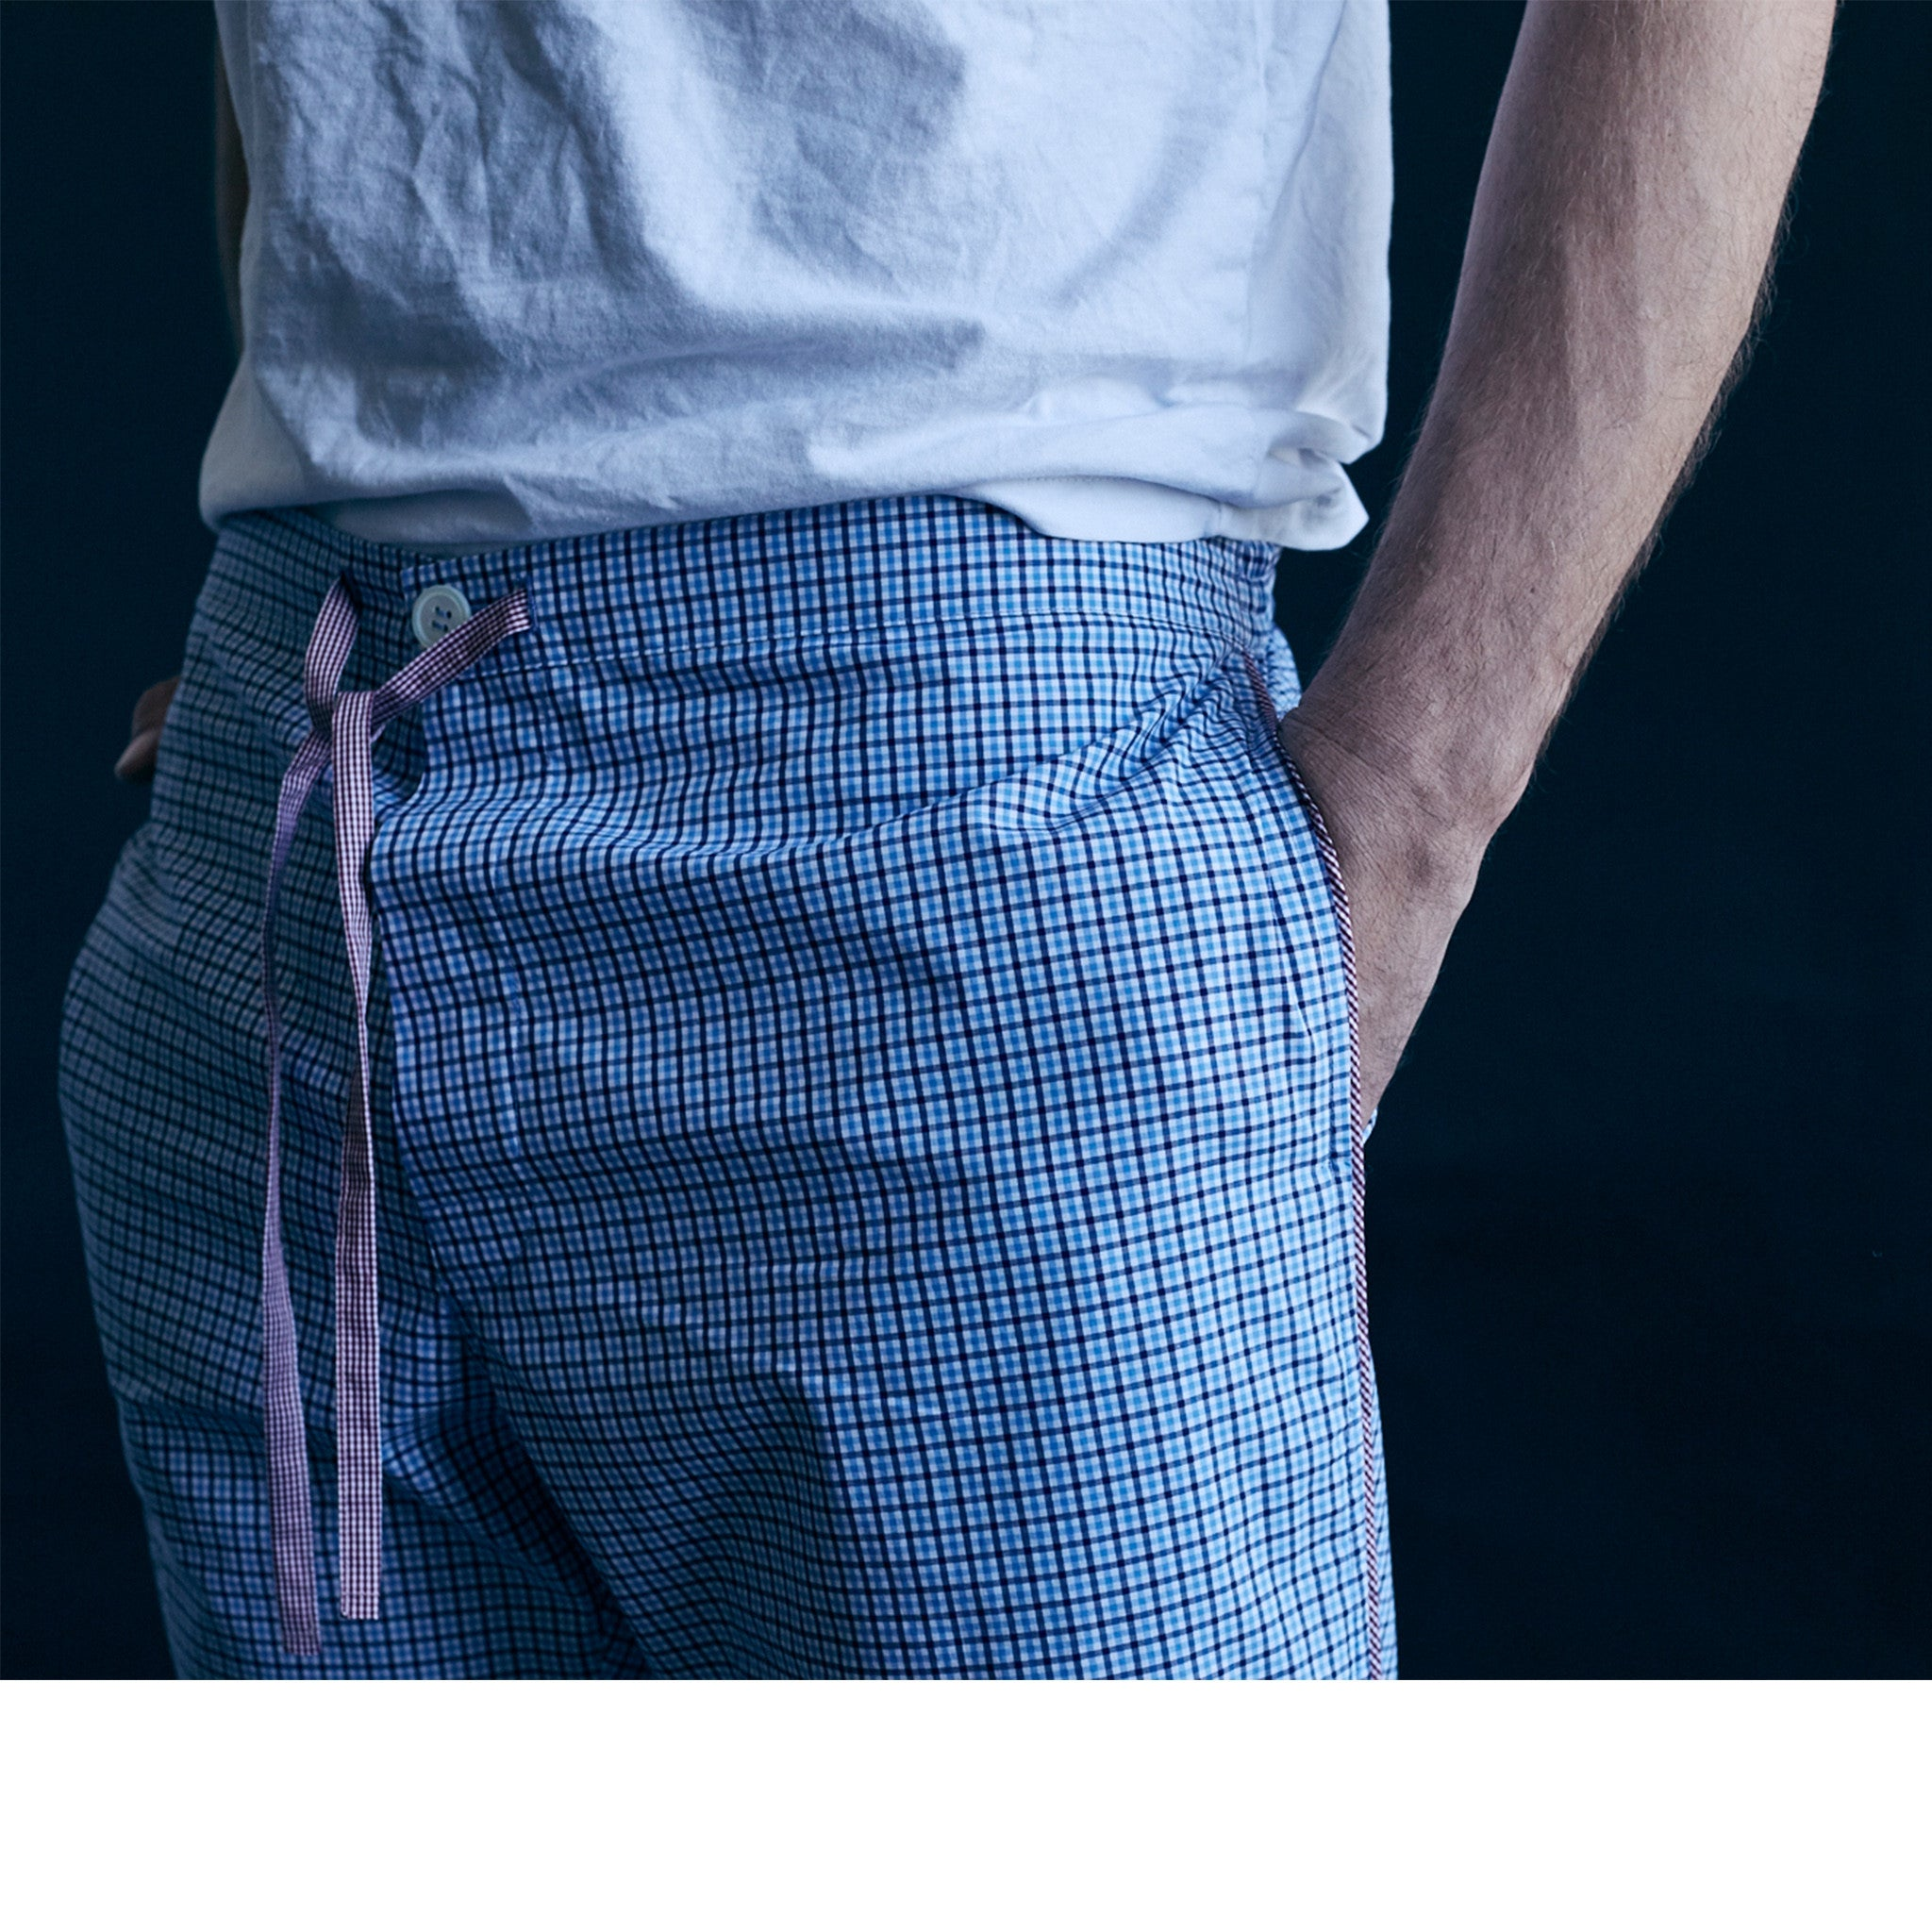 Saturn Pajama Pant in Blue Micro Check Italian Cotton